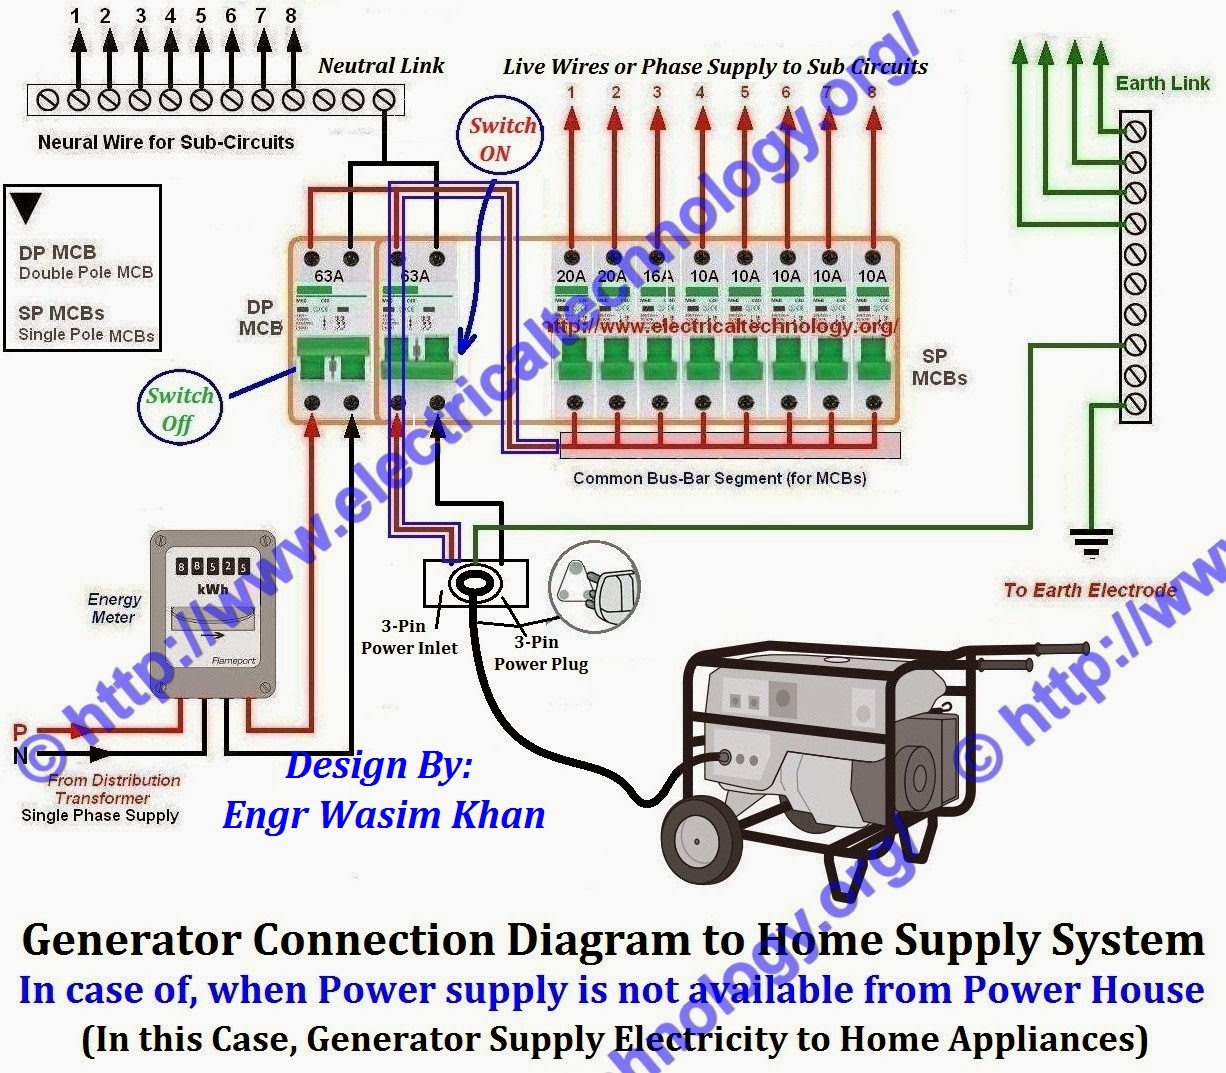 schematic wiring generator to house wiring diagram automotiveschematic generator to house 9 7 woodmarquetry de \\u2022wiring generator to house ecs zaislunamai uk